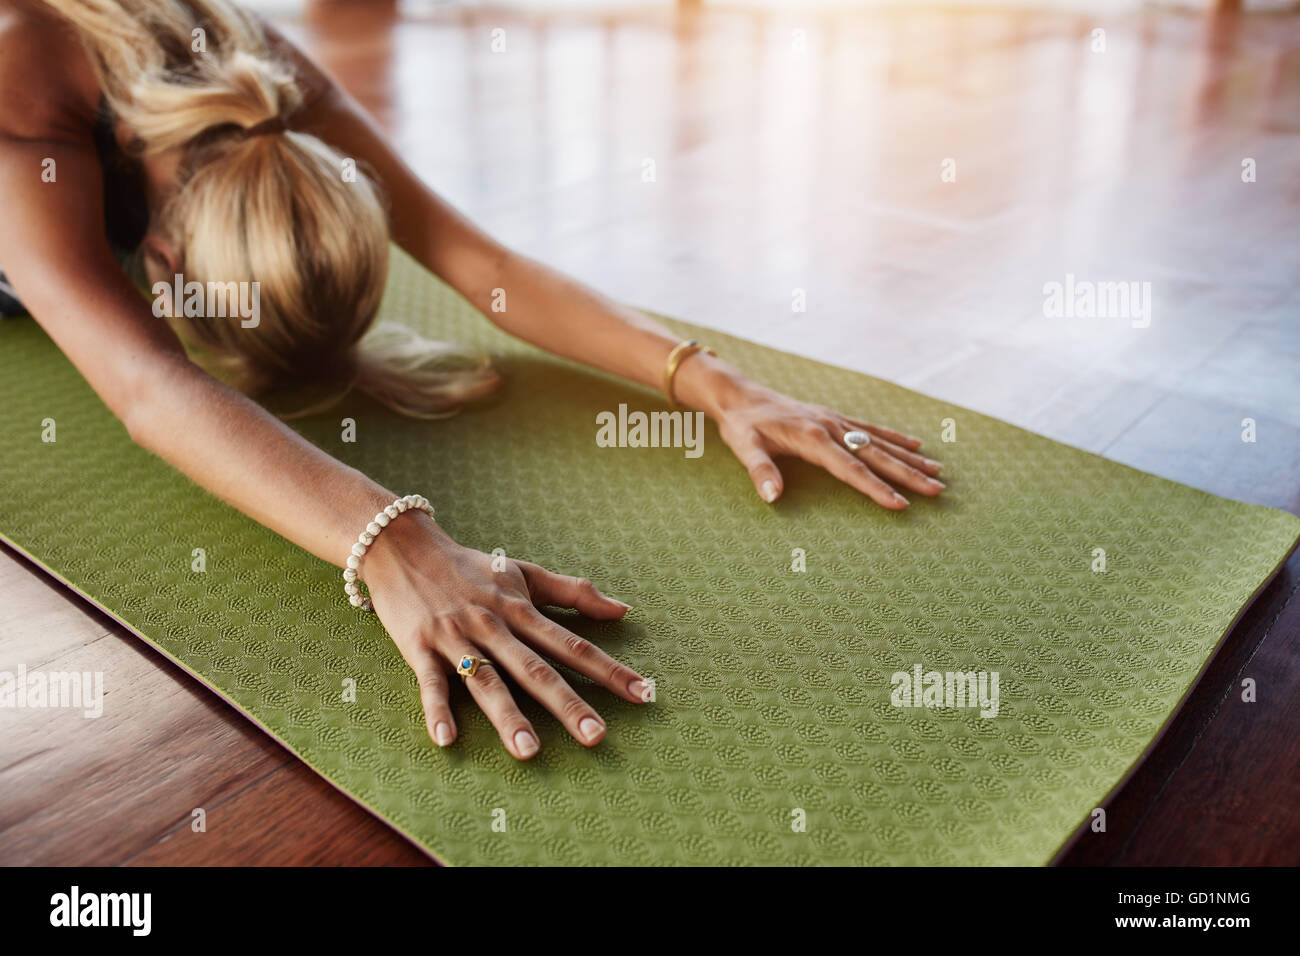 Female doing stretching workout on exercise mat. Woman doing balasana yoga at gym, with focus on hands. - Stock Image